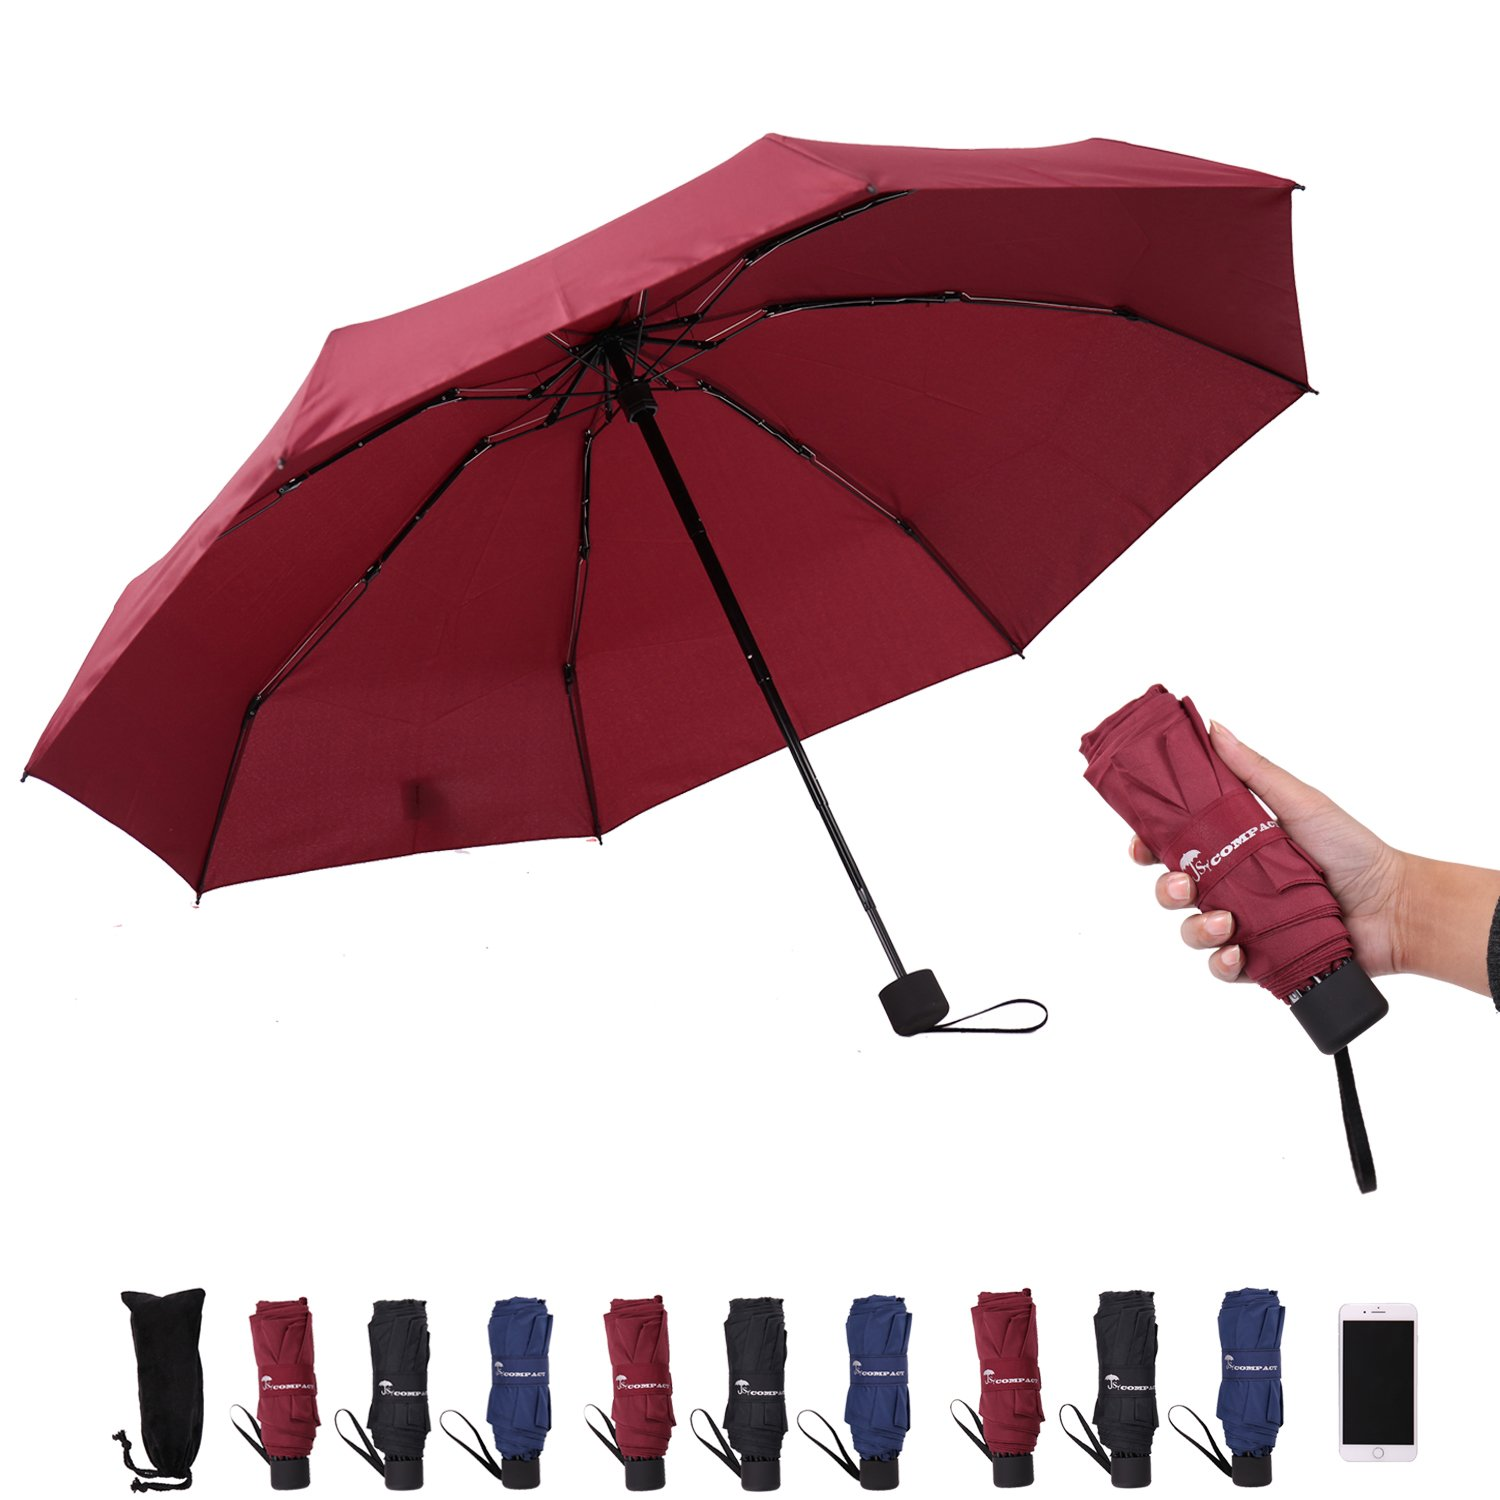 SY Compact Travel Umbrella - Lightweight Portable Mini Compact Umbrellas-Factory Outlet Shop (Black)